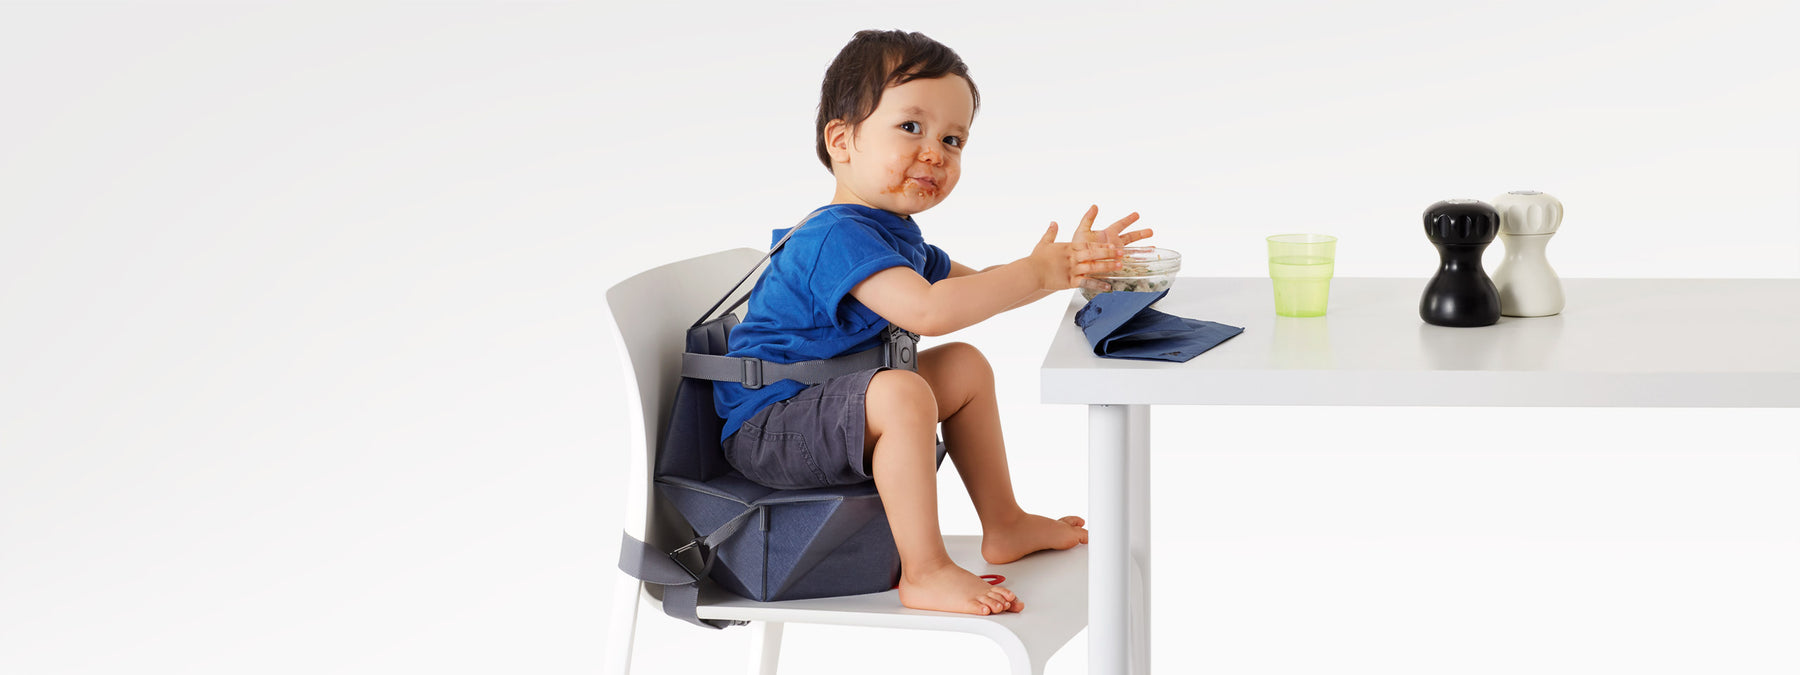 Baby boy seating on a compact high chair eating bolognese